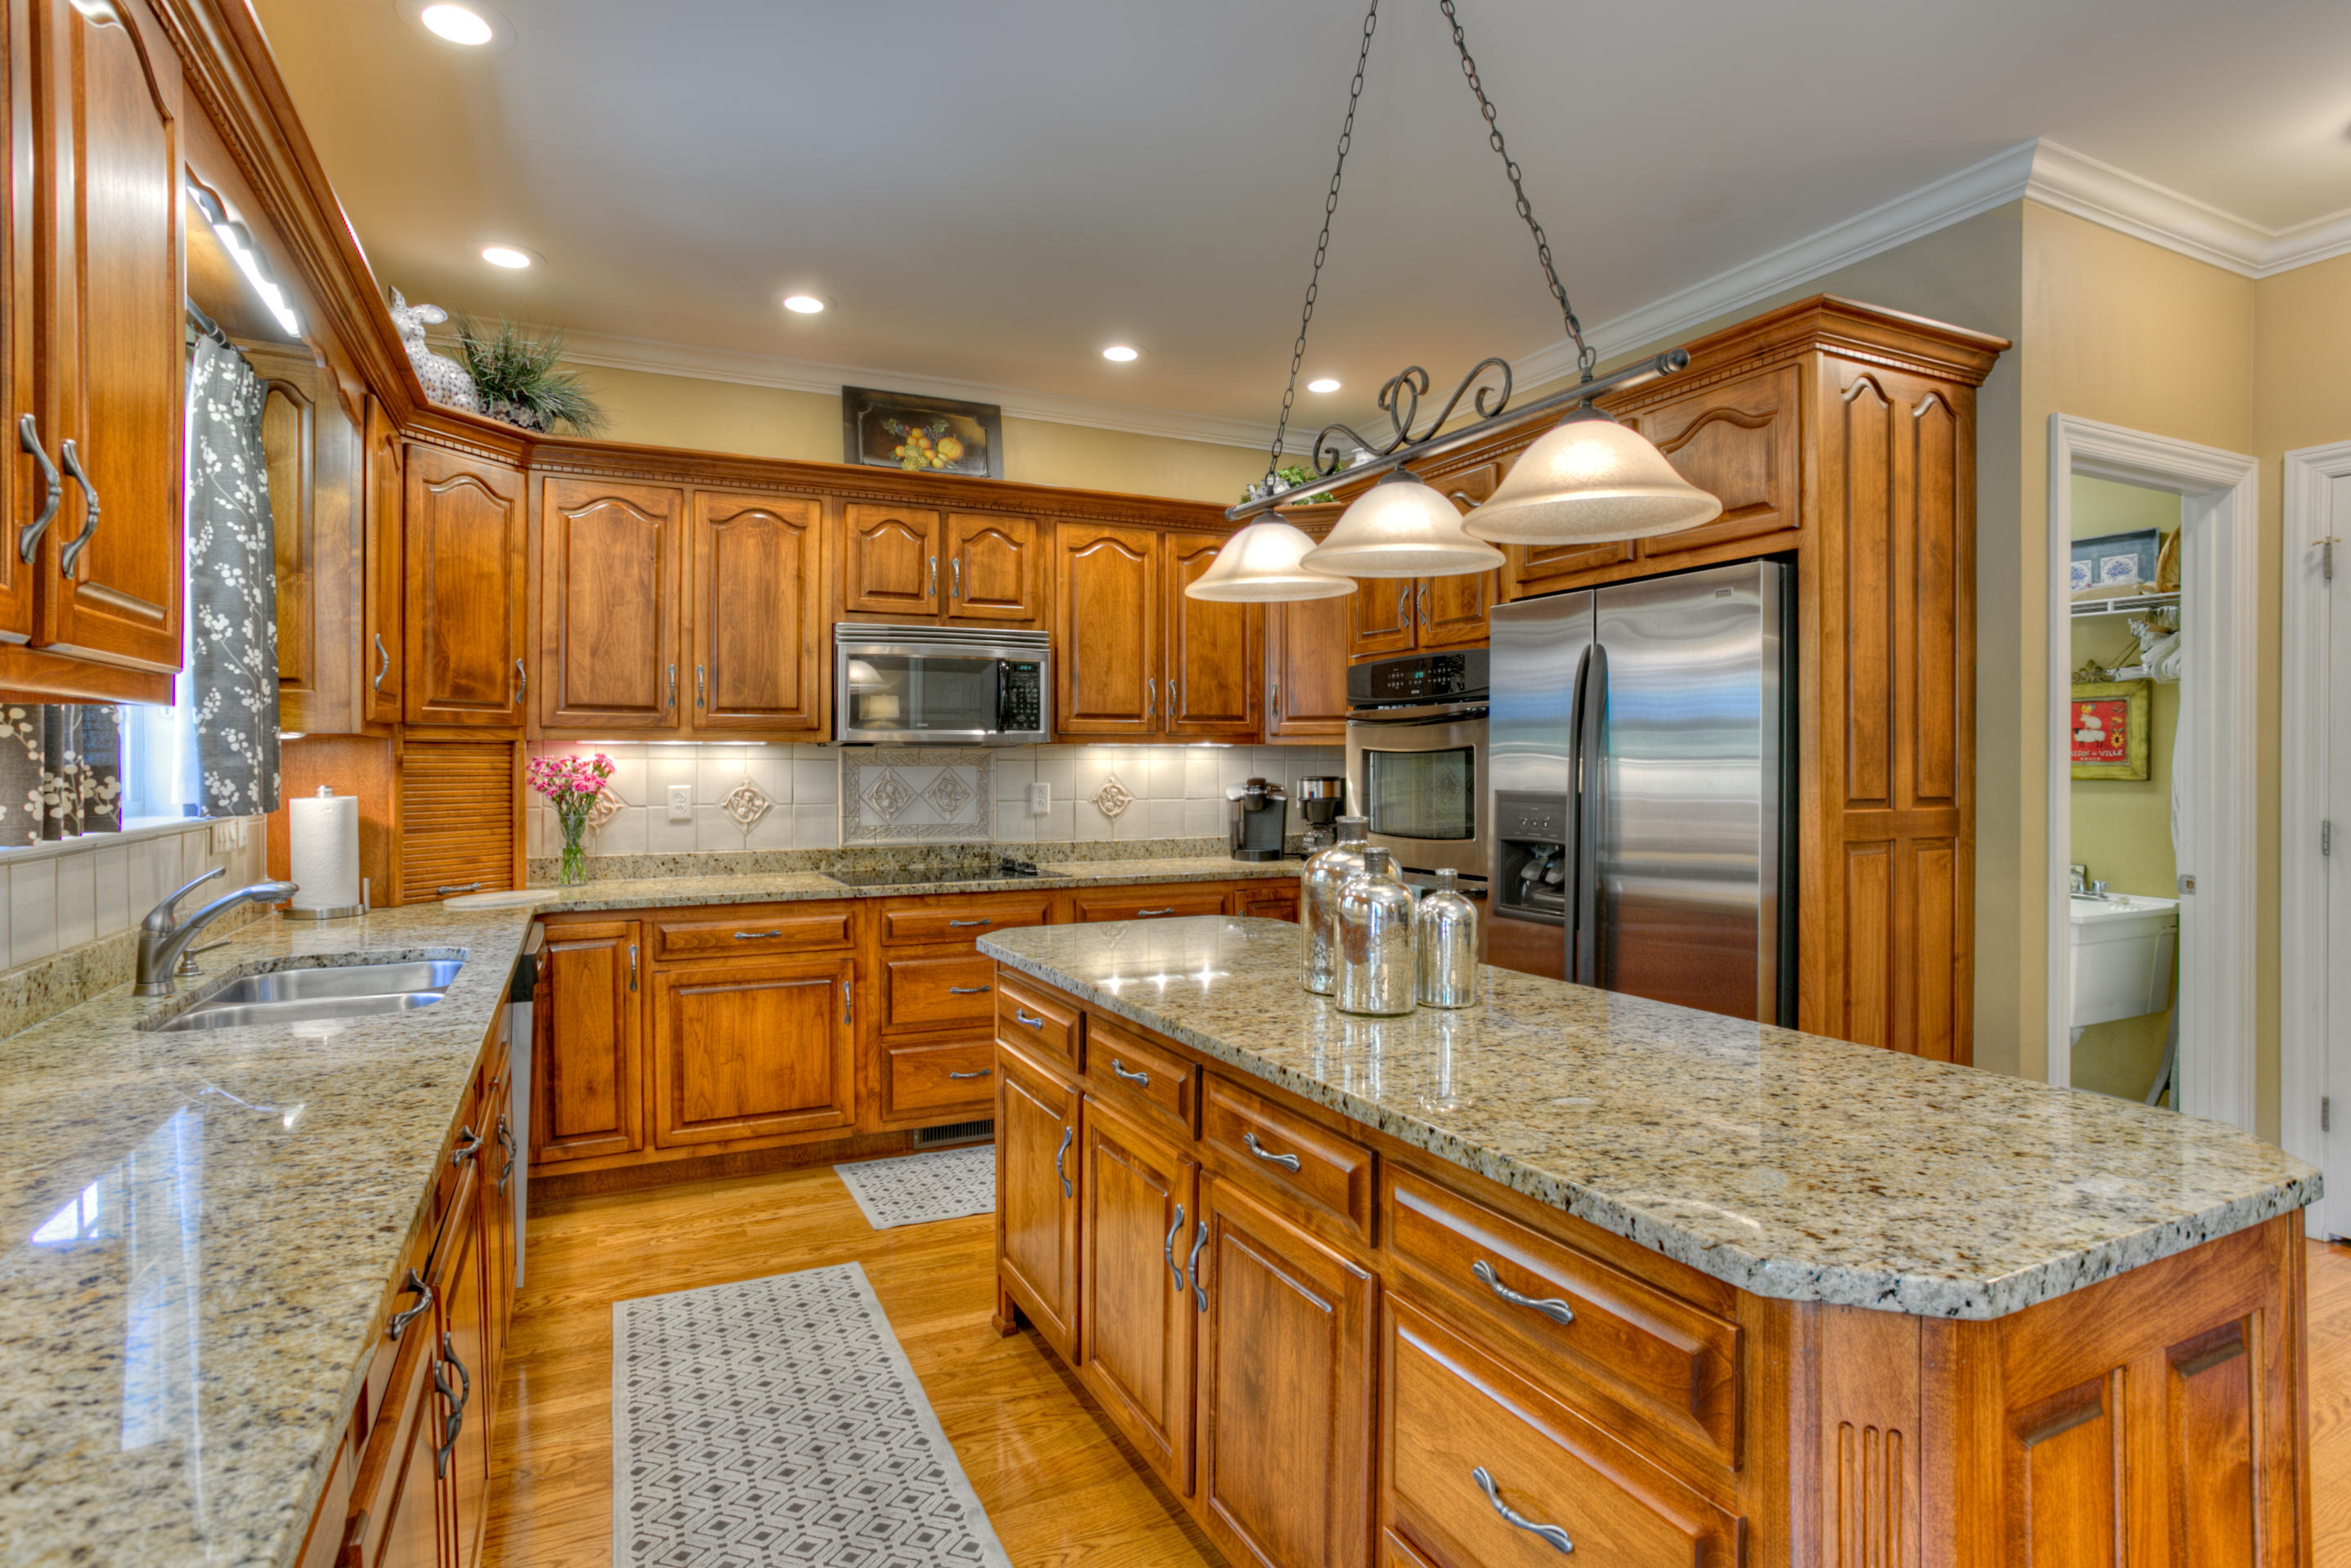 863 Ivy Manor Ct, Hixson, TN 37343